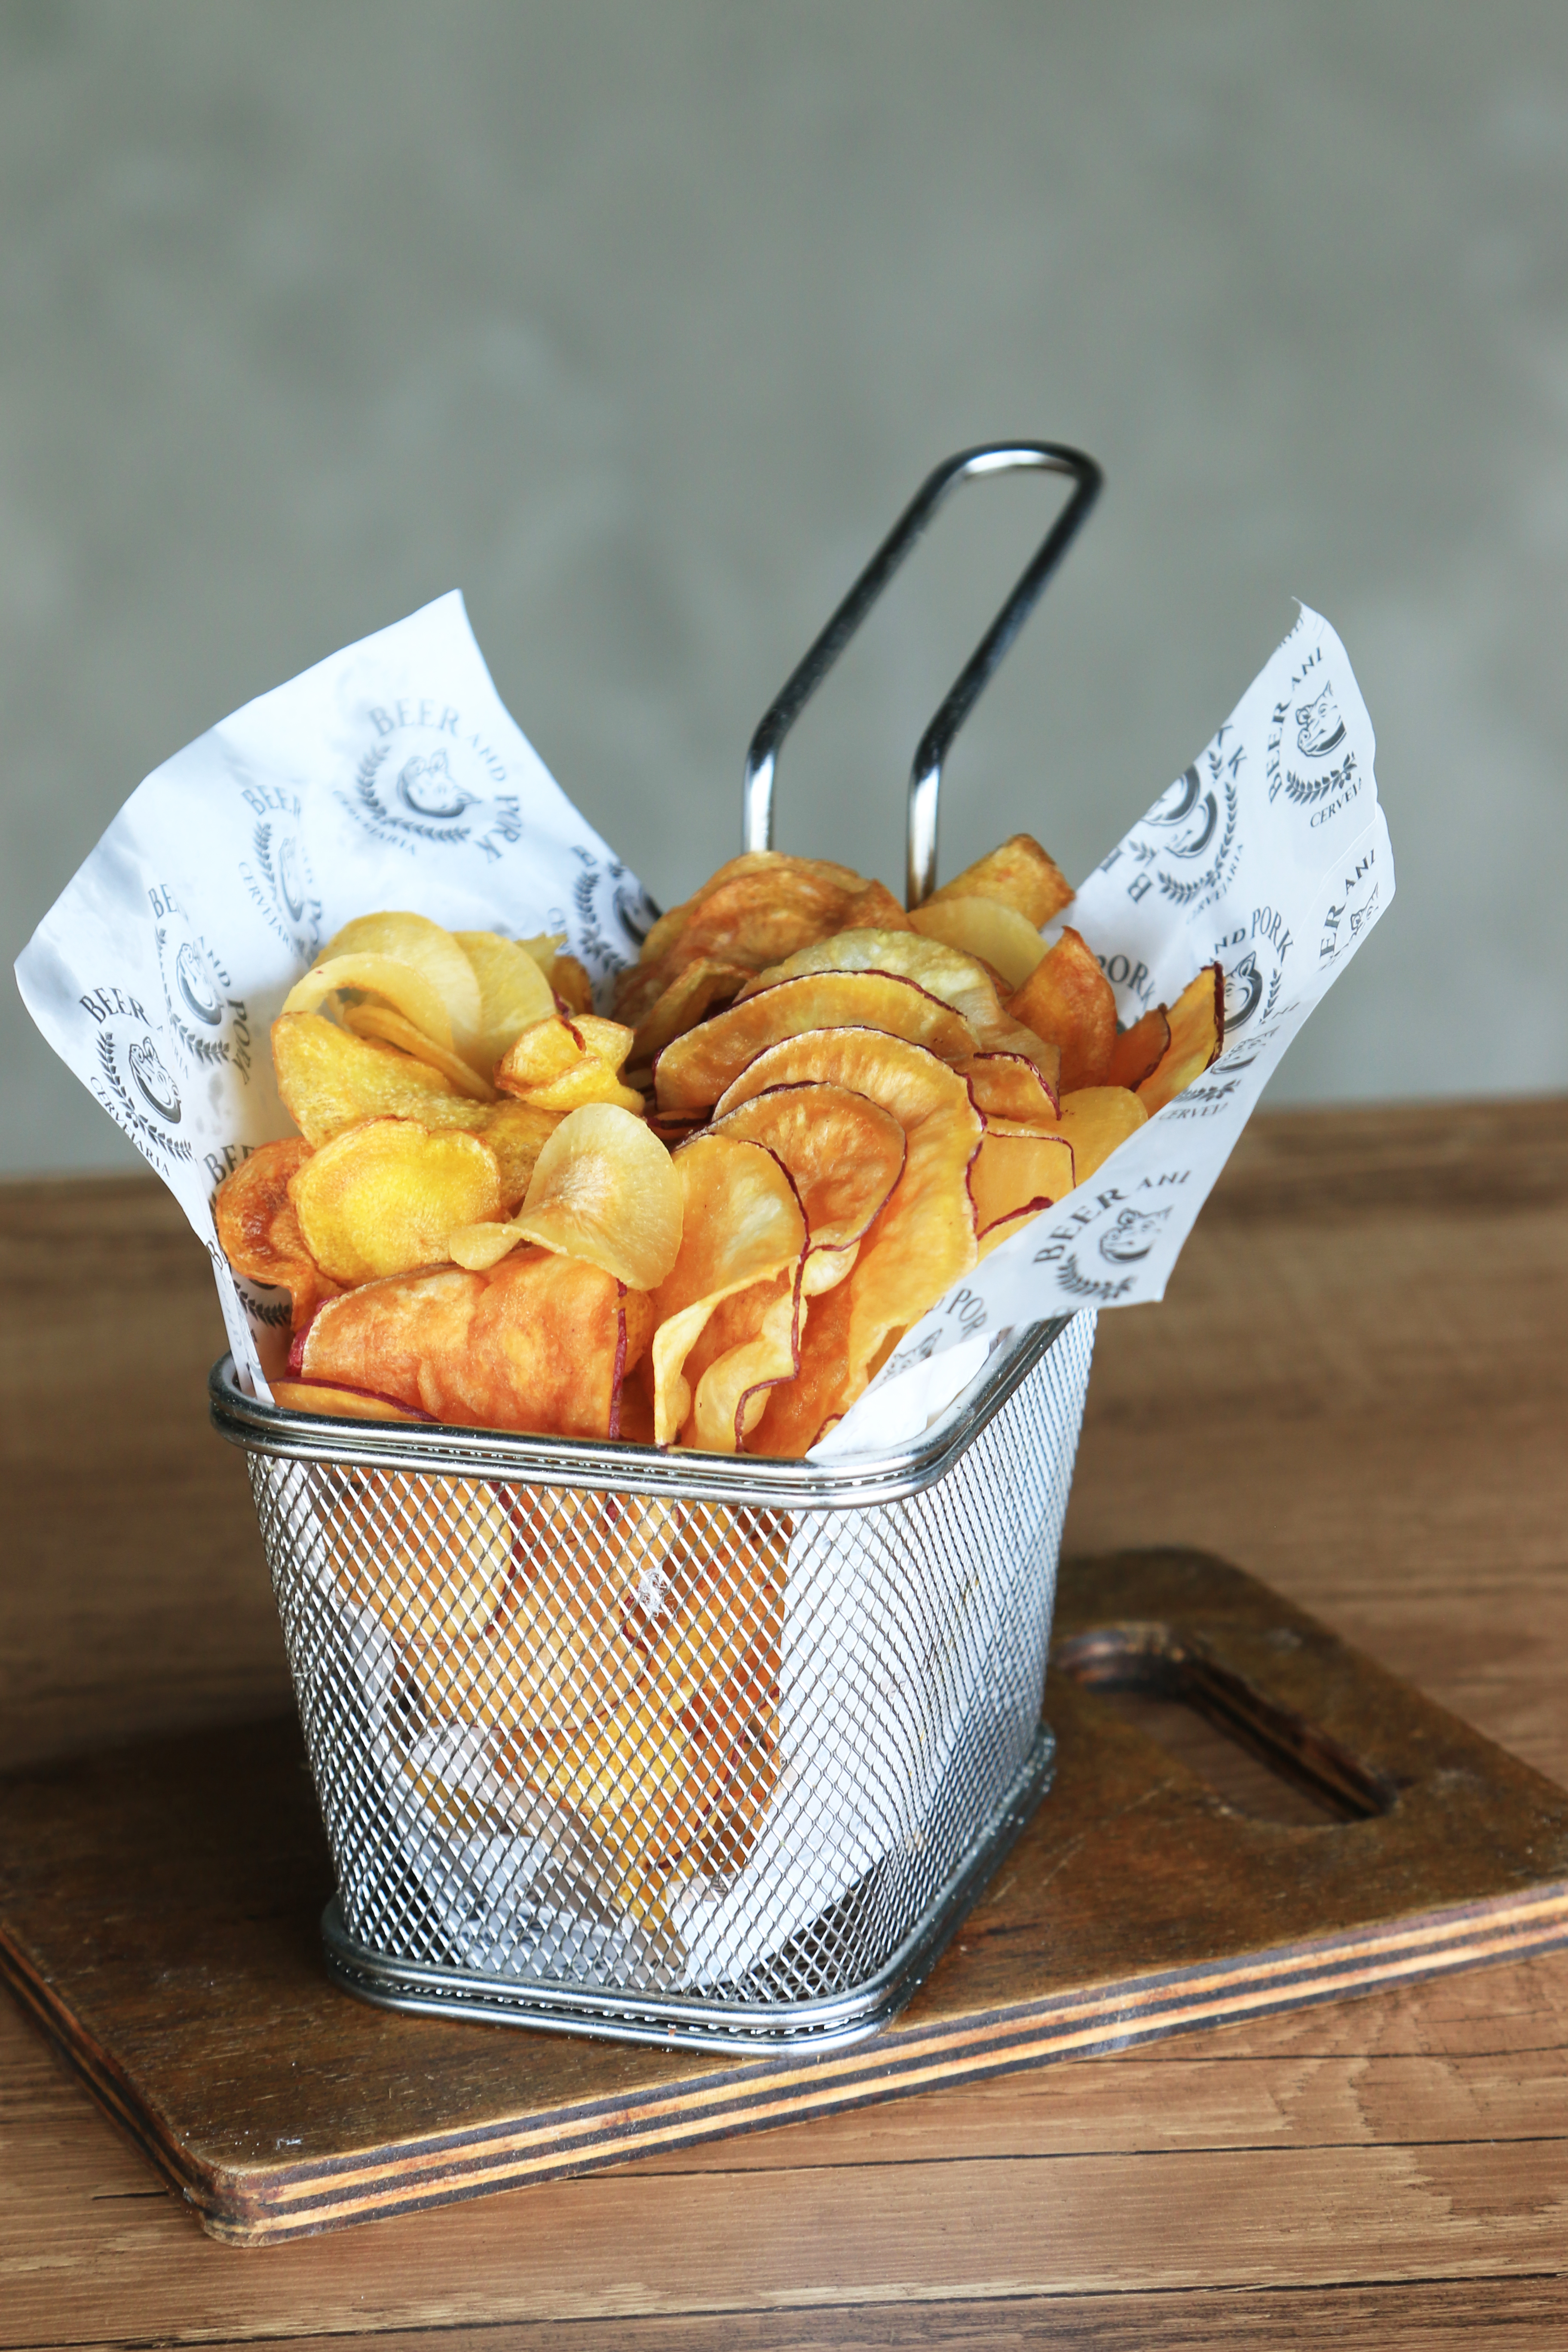 CHIPS & CHIPS